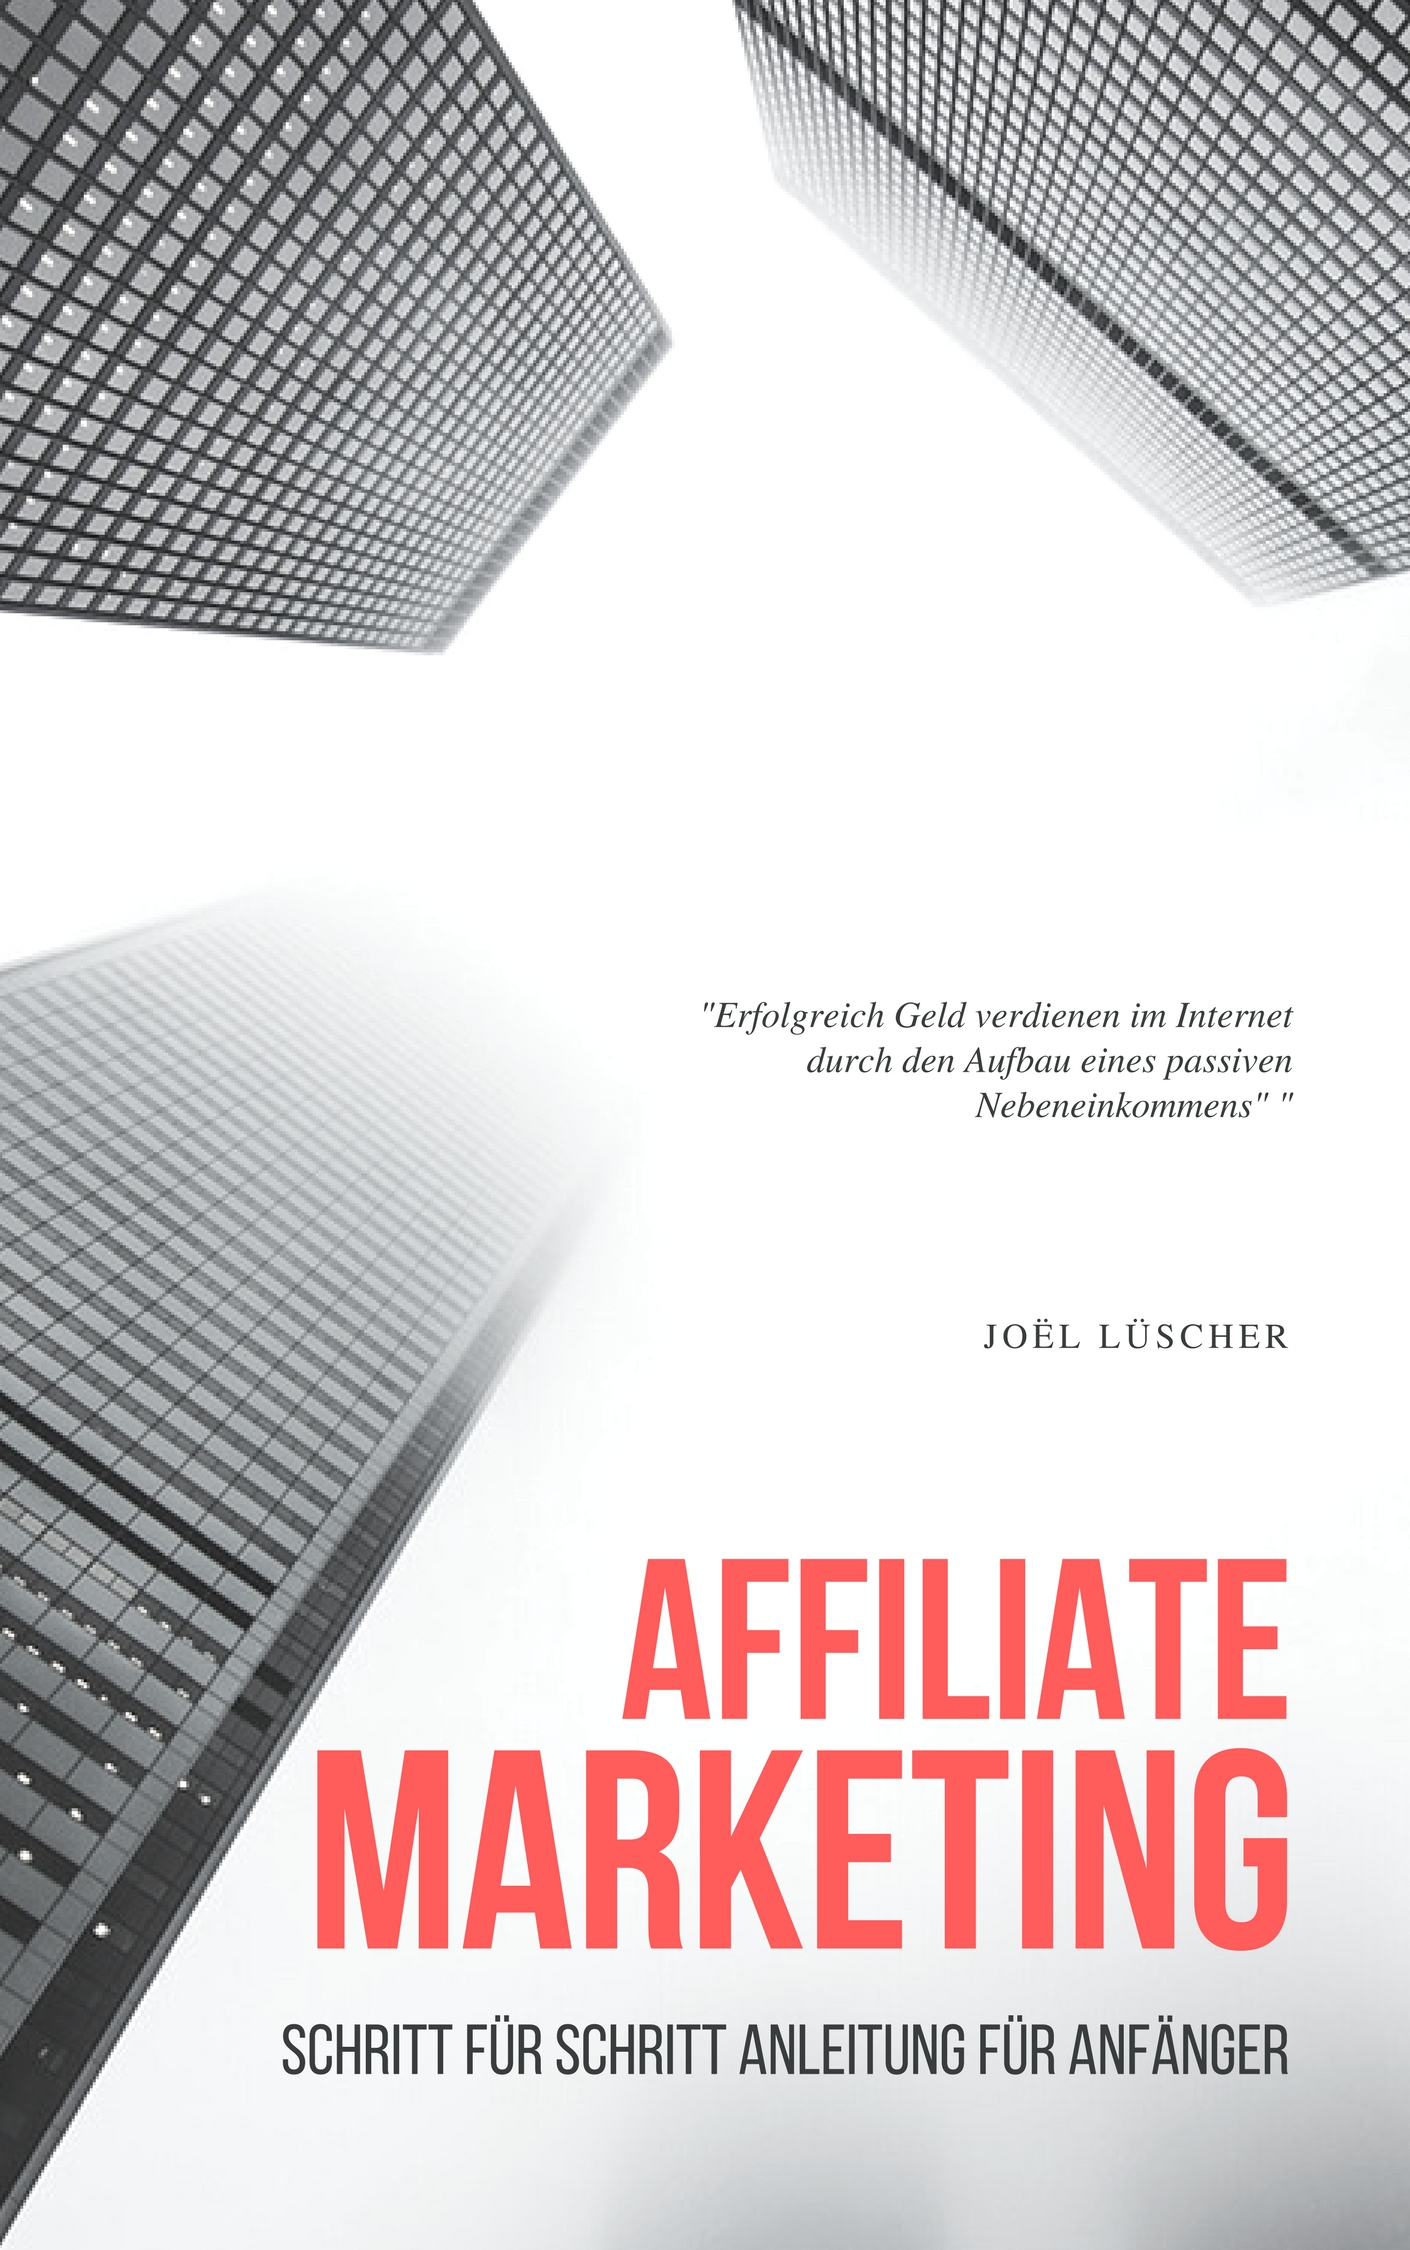 Affiliatemarketingjpg